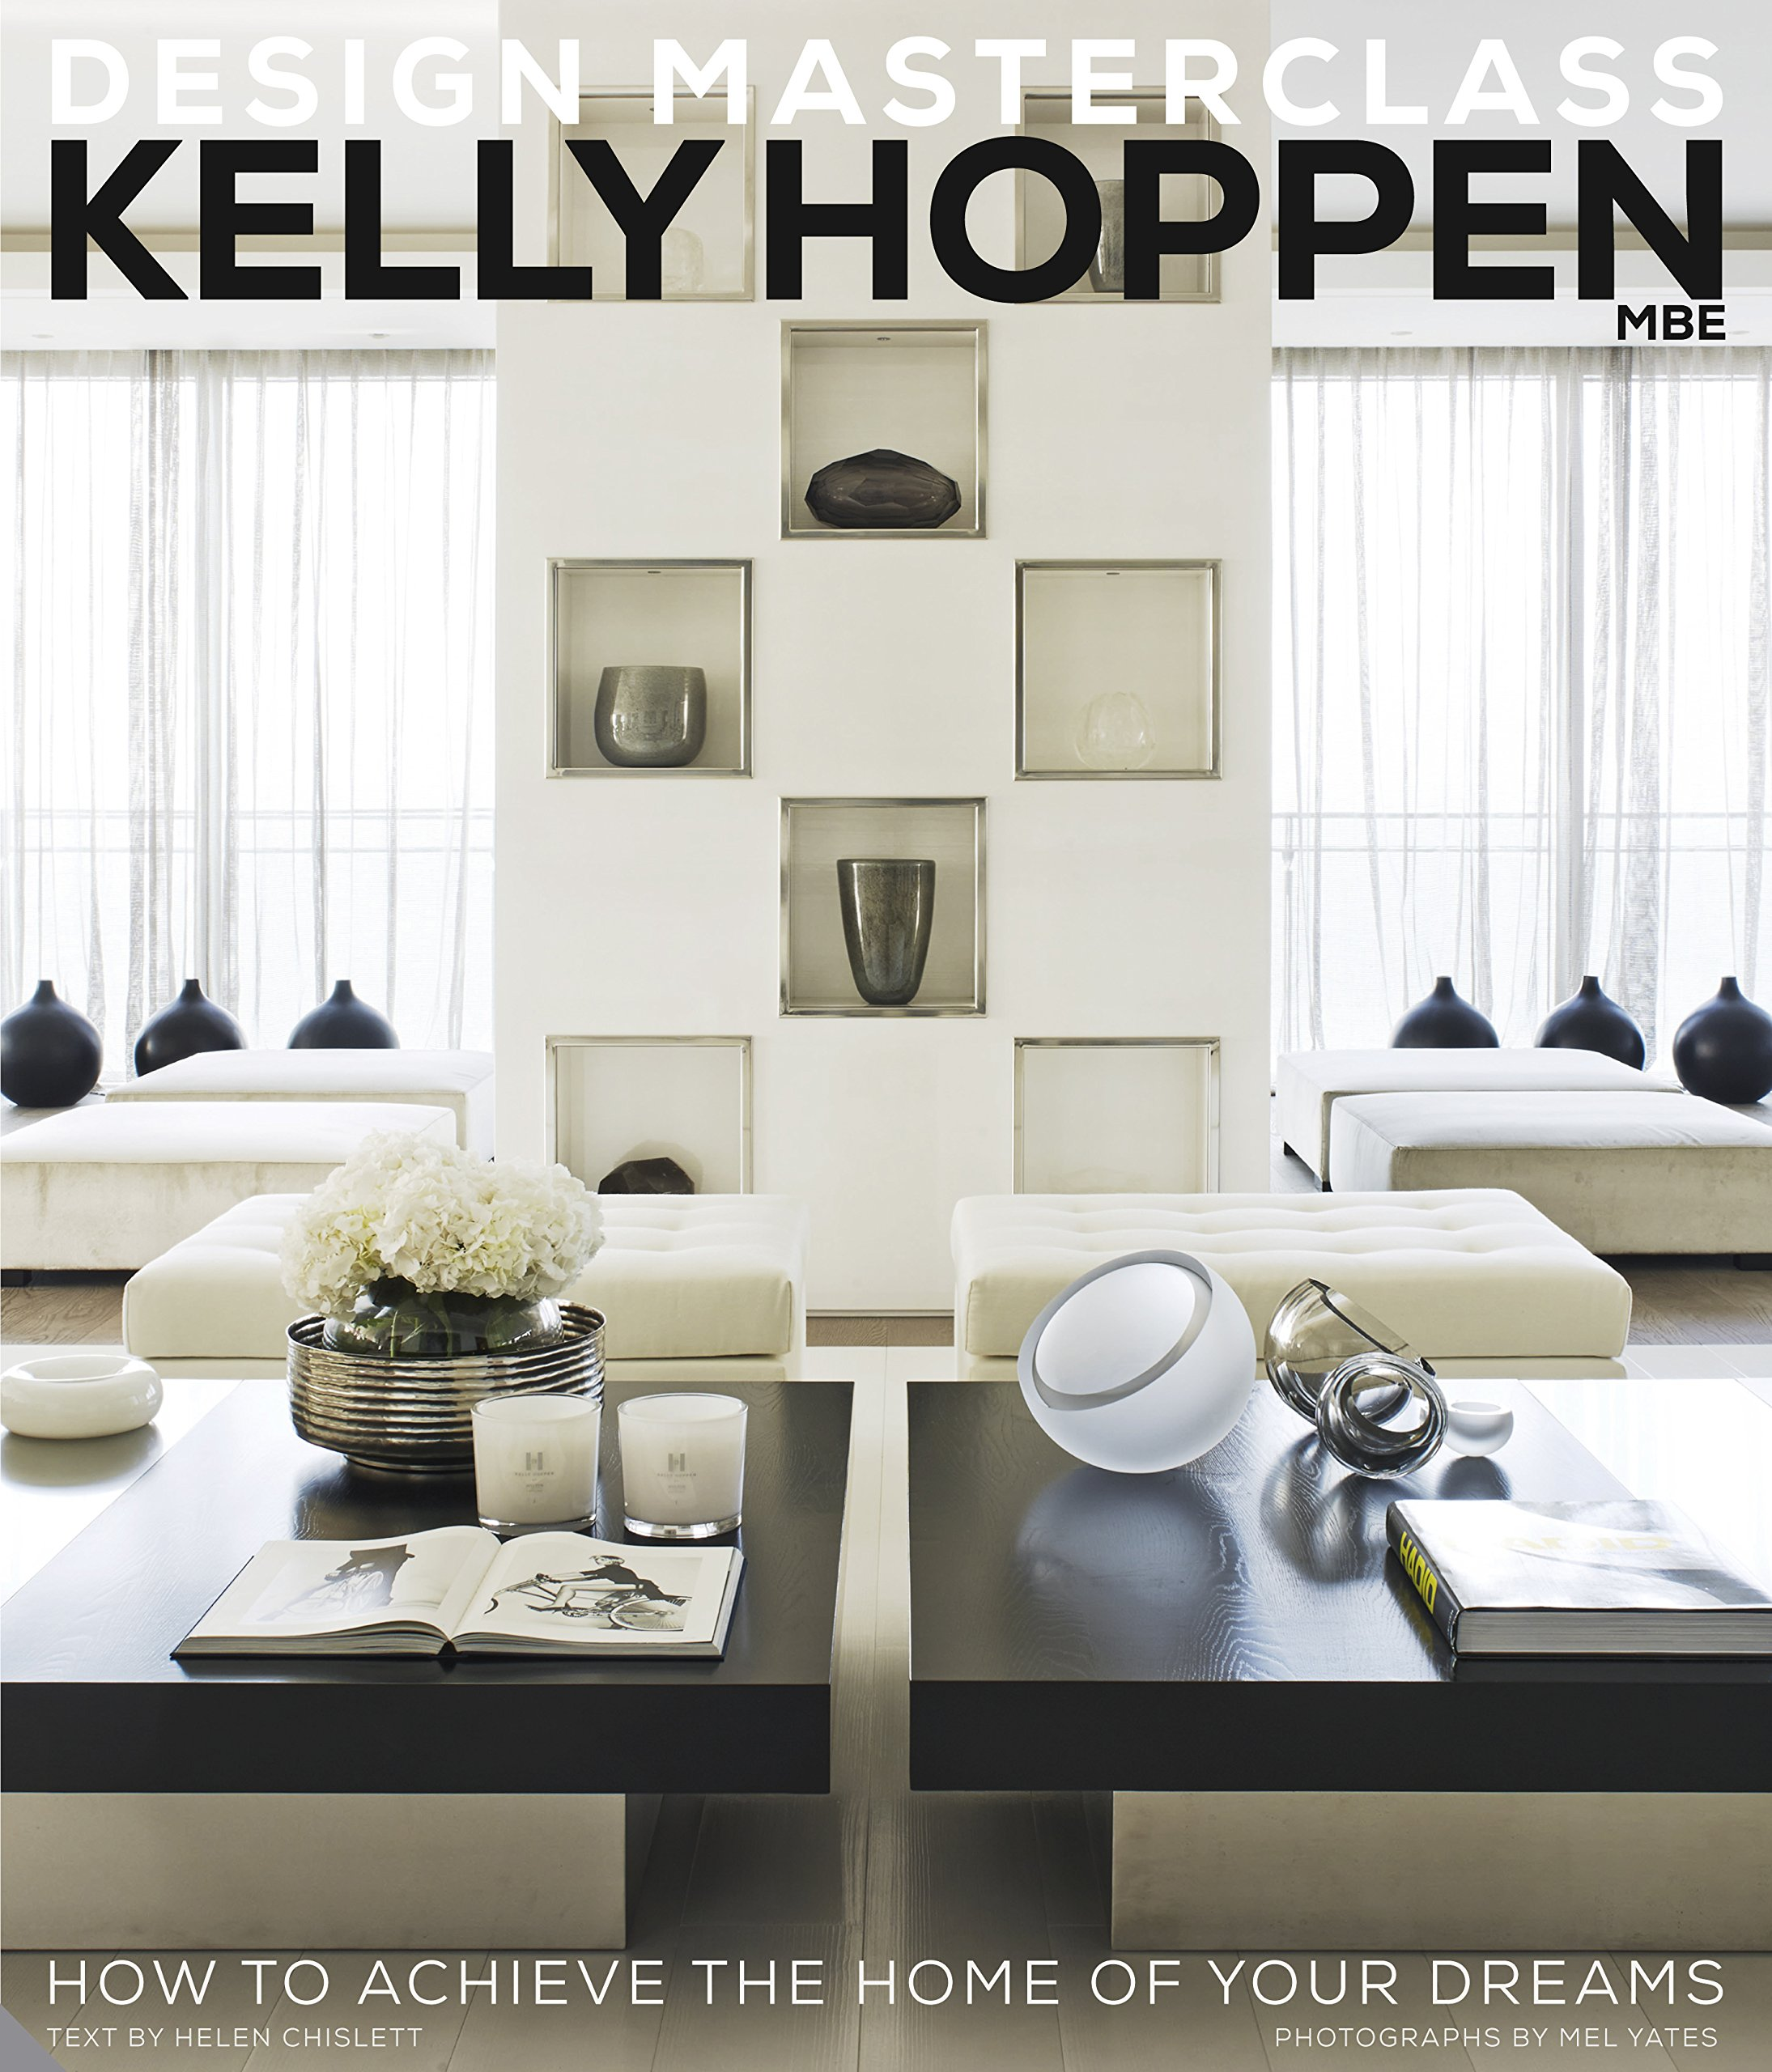 stockists of kelly hoppen